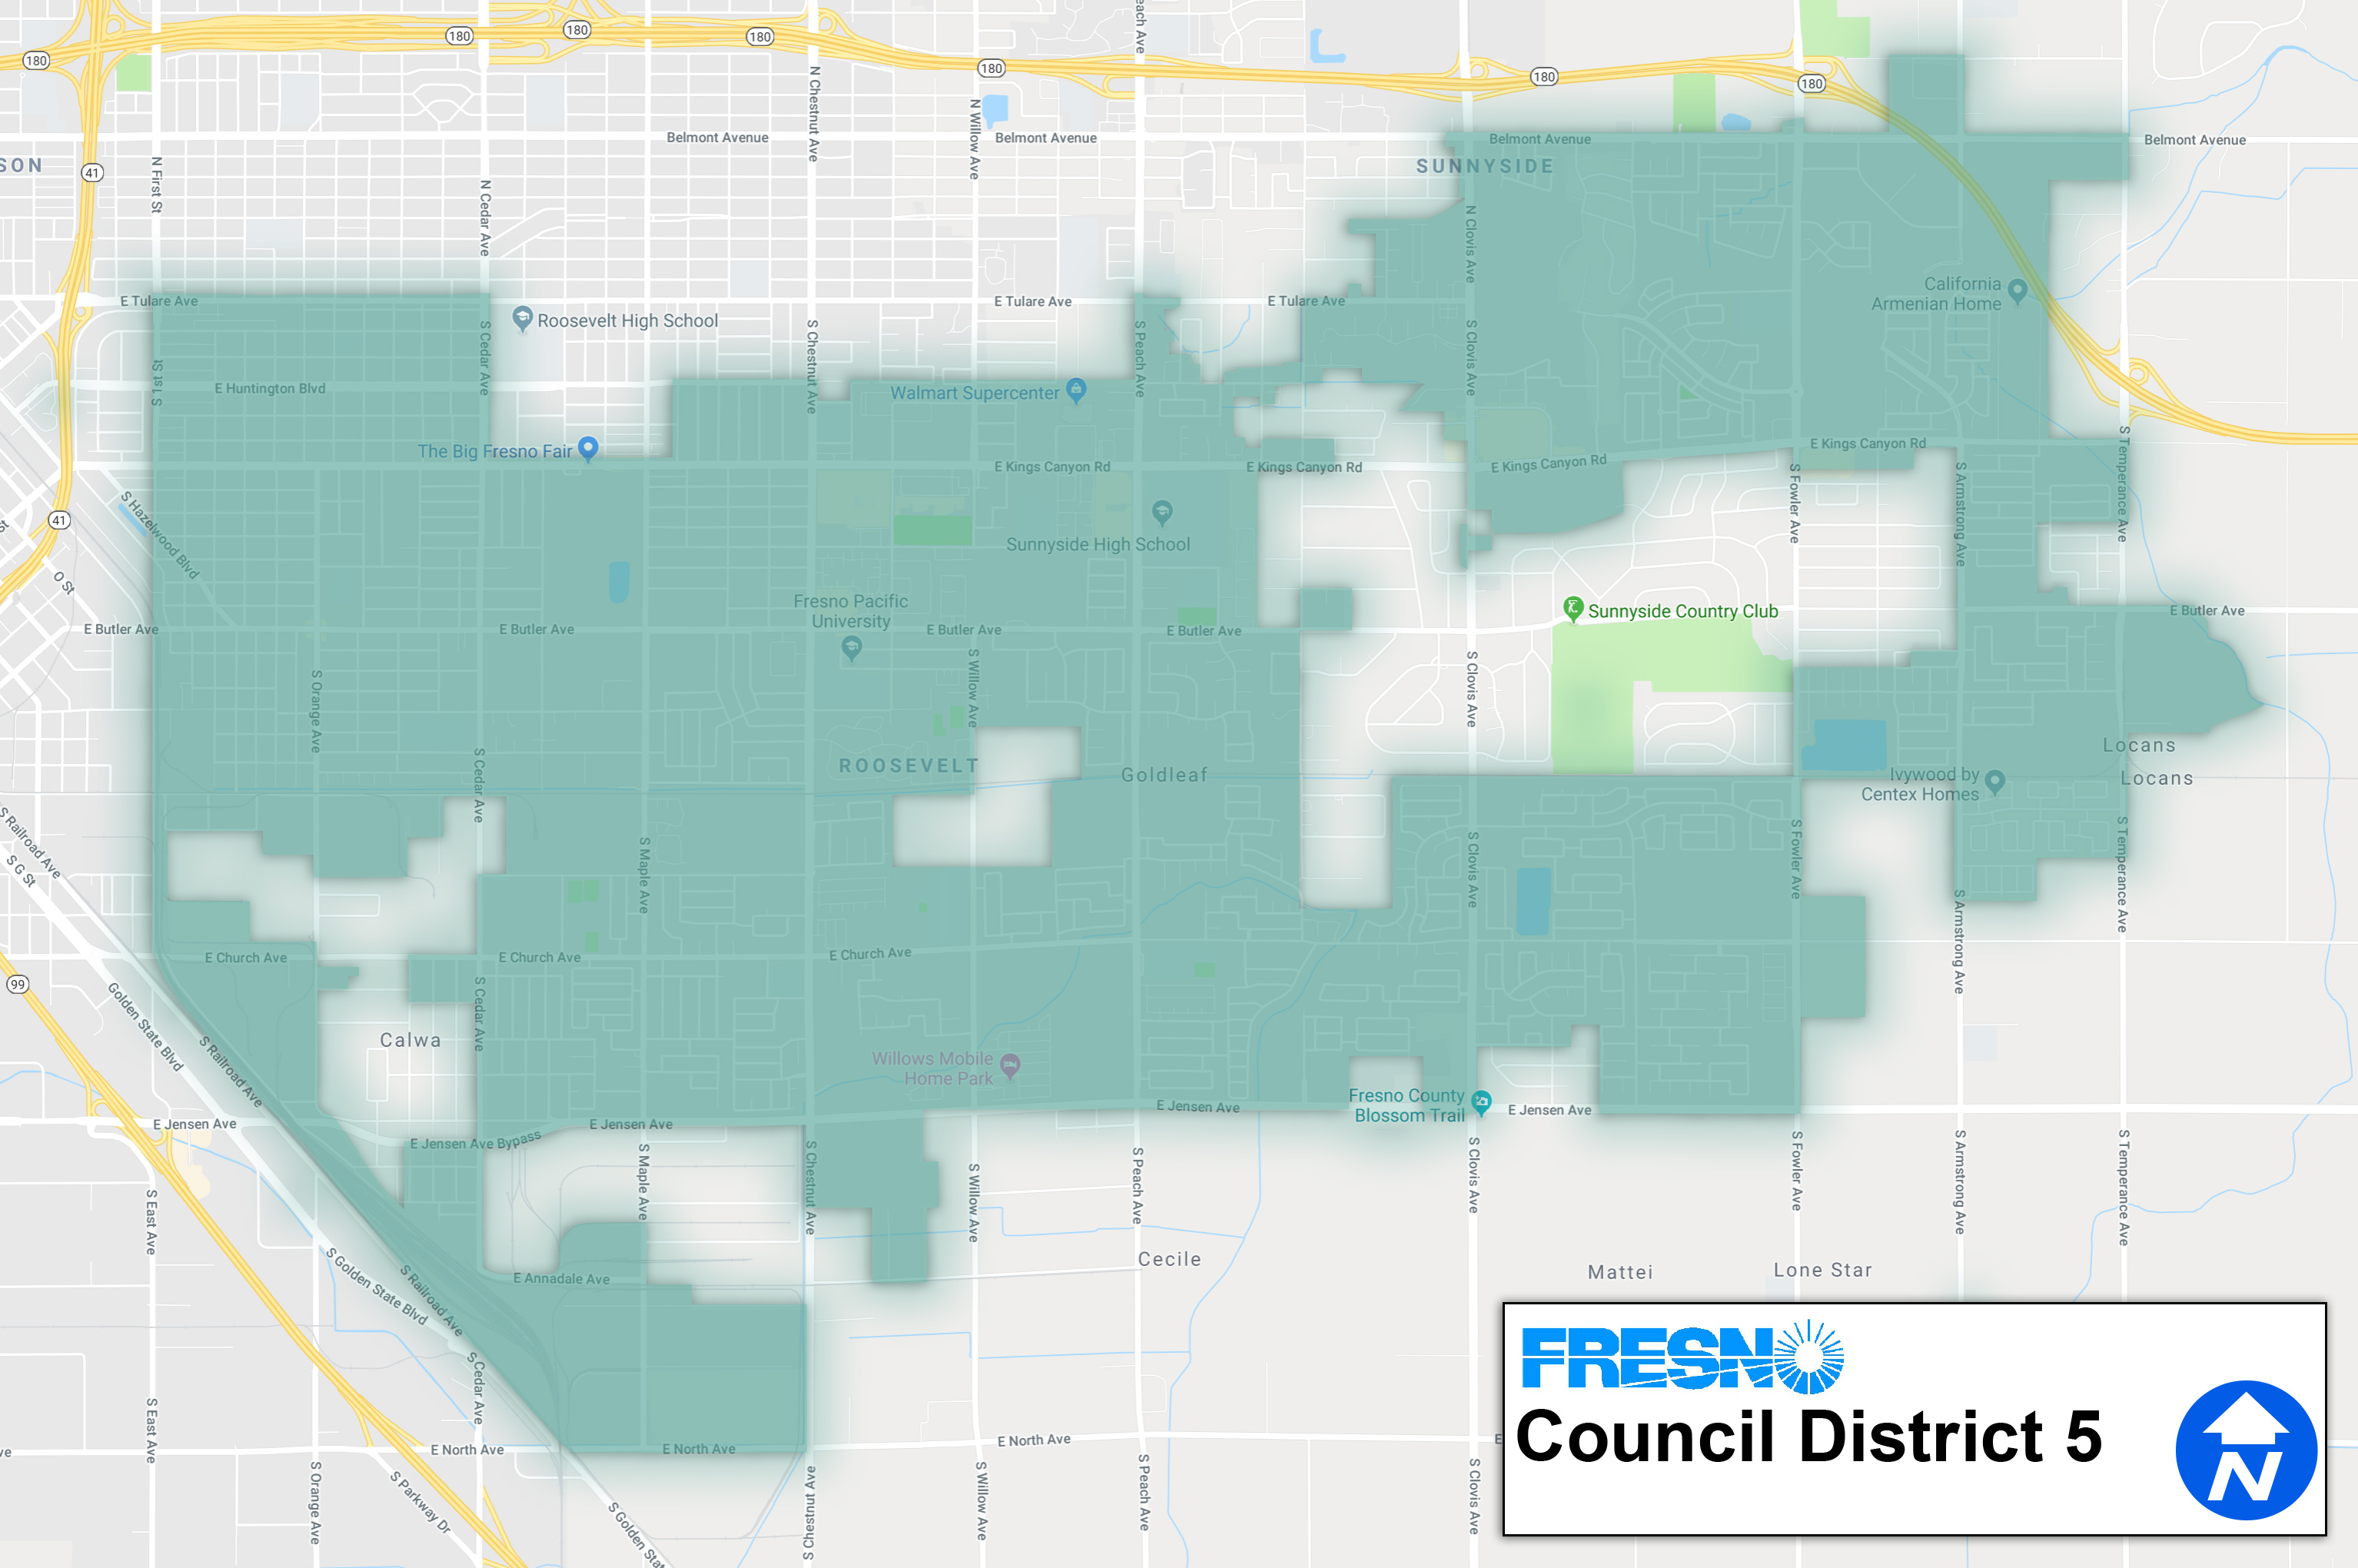 Map of Fresno City Council District 5